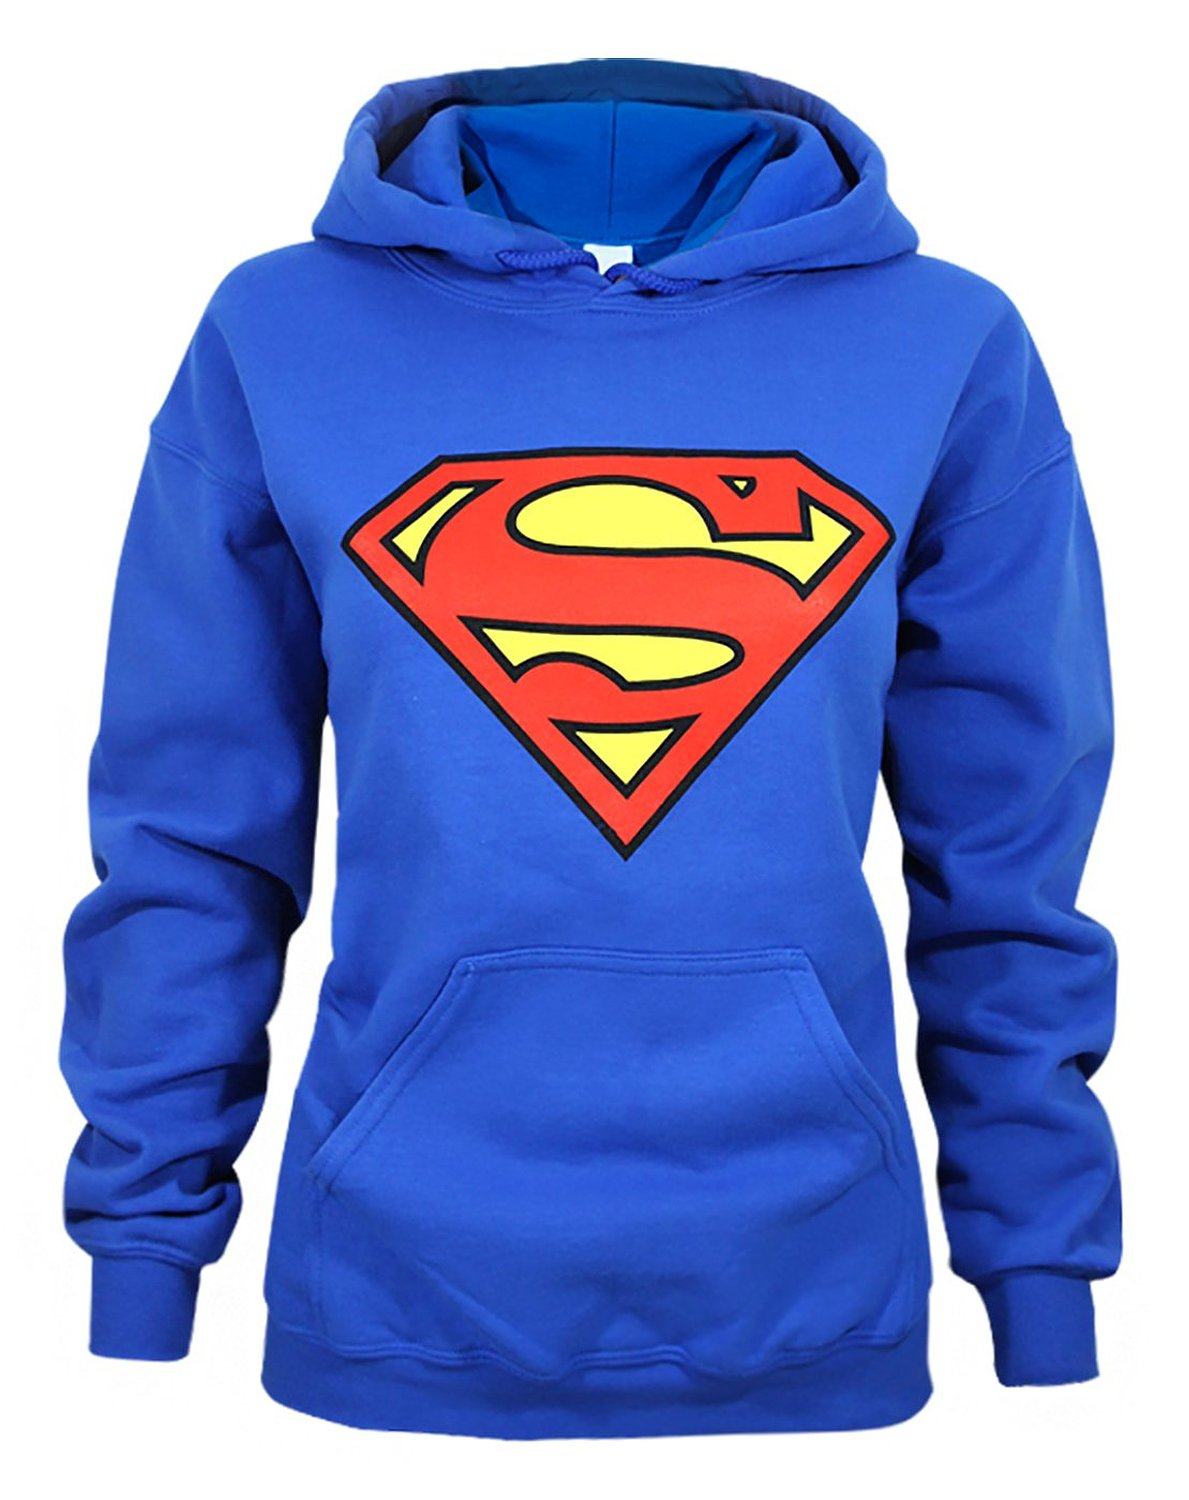 If you are going to take on Lex Luthor, put on these Superman socks to fly into action with style. Don't let the cold be your kryptonite, fight back with a Superman hoodie or jacket. Hot Topic has the gear to keep Metropolis and the world safe.